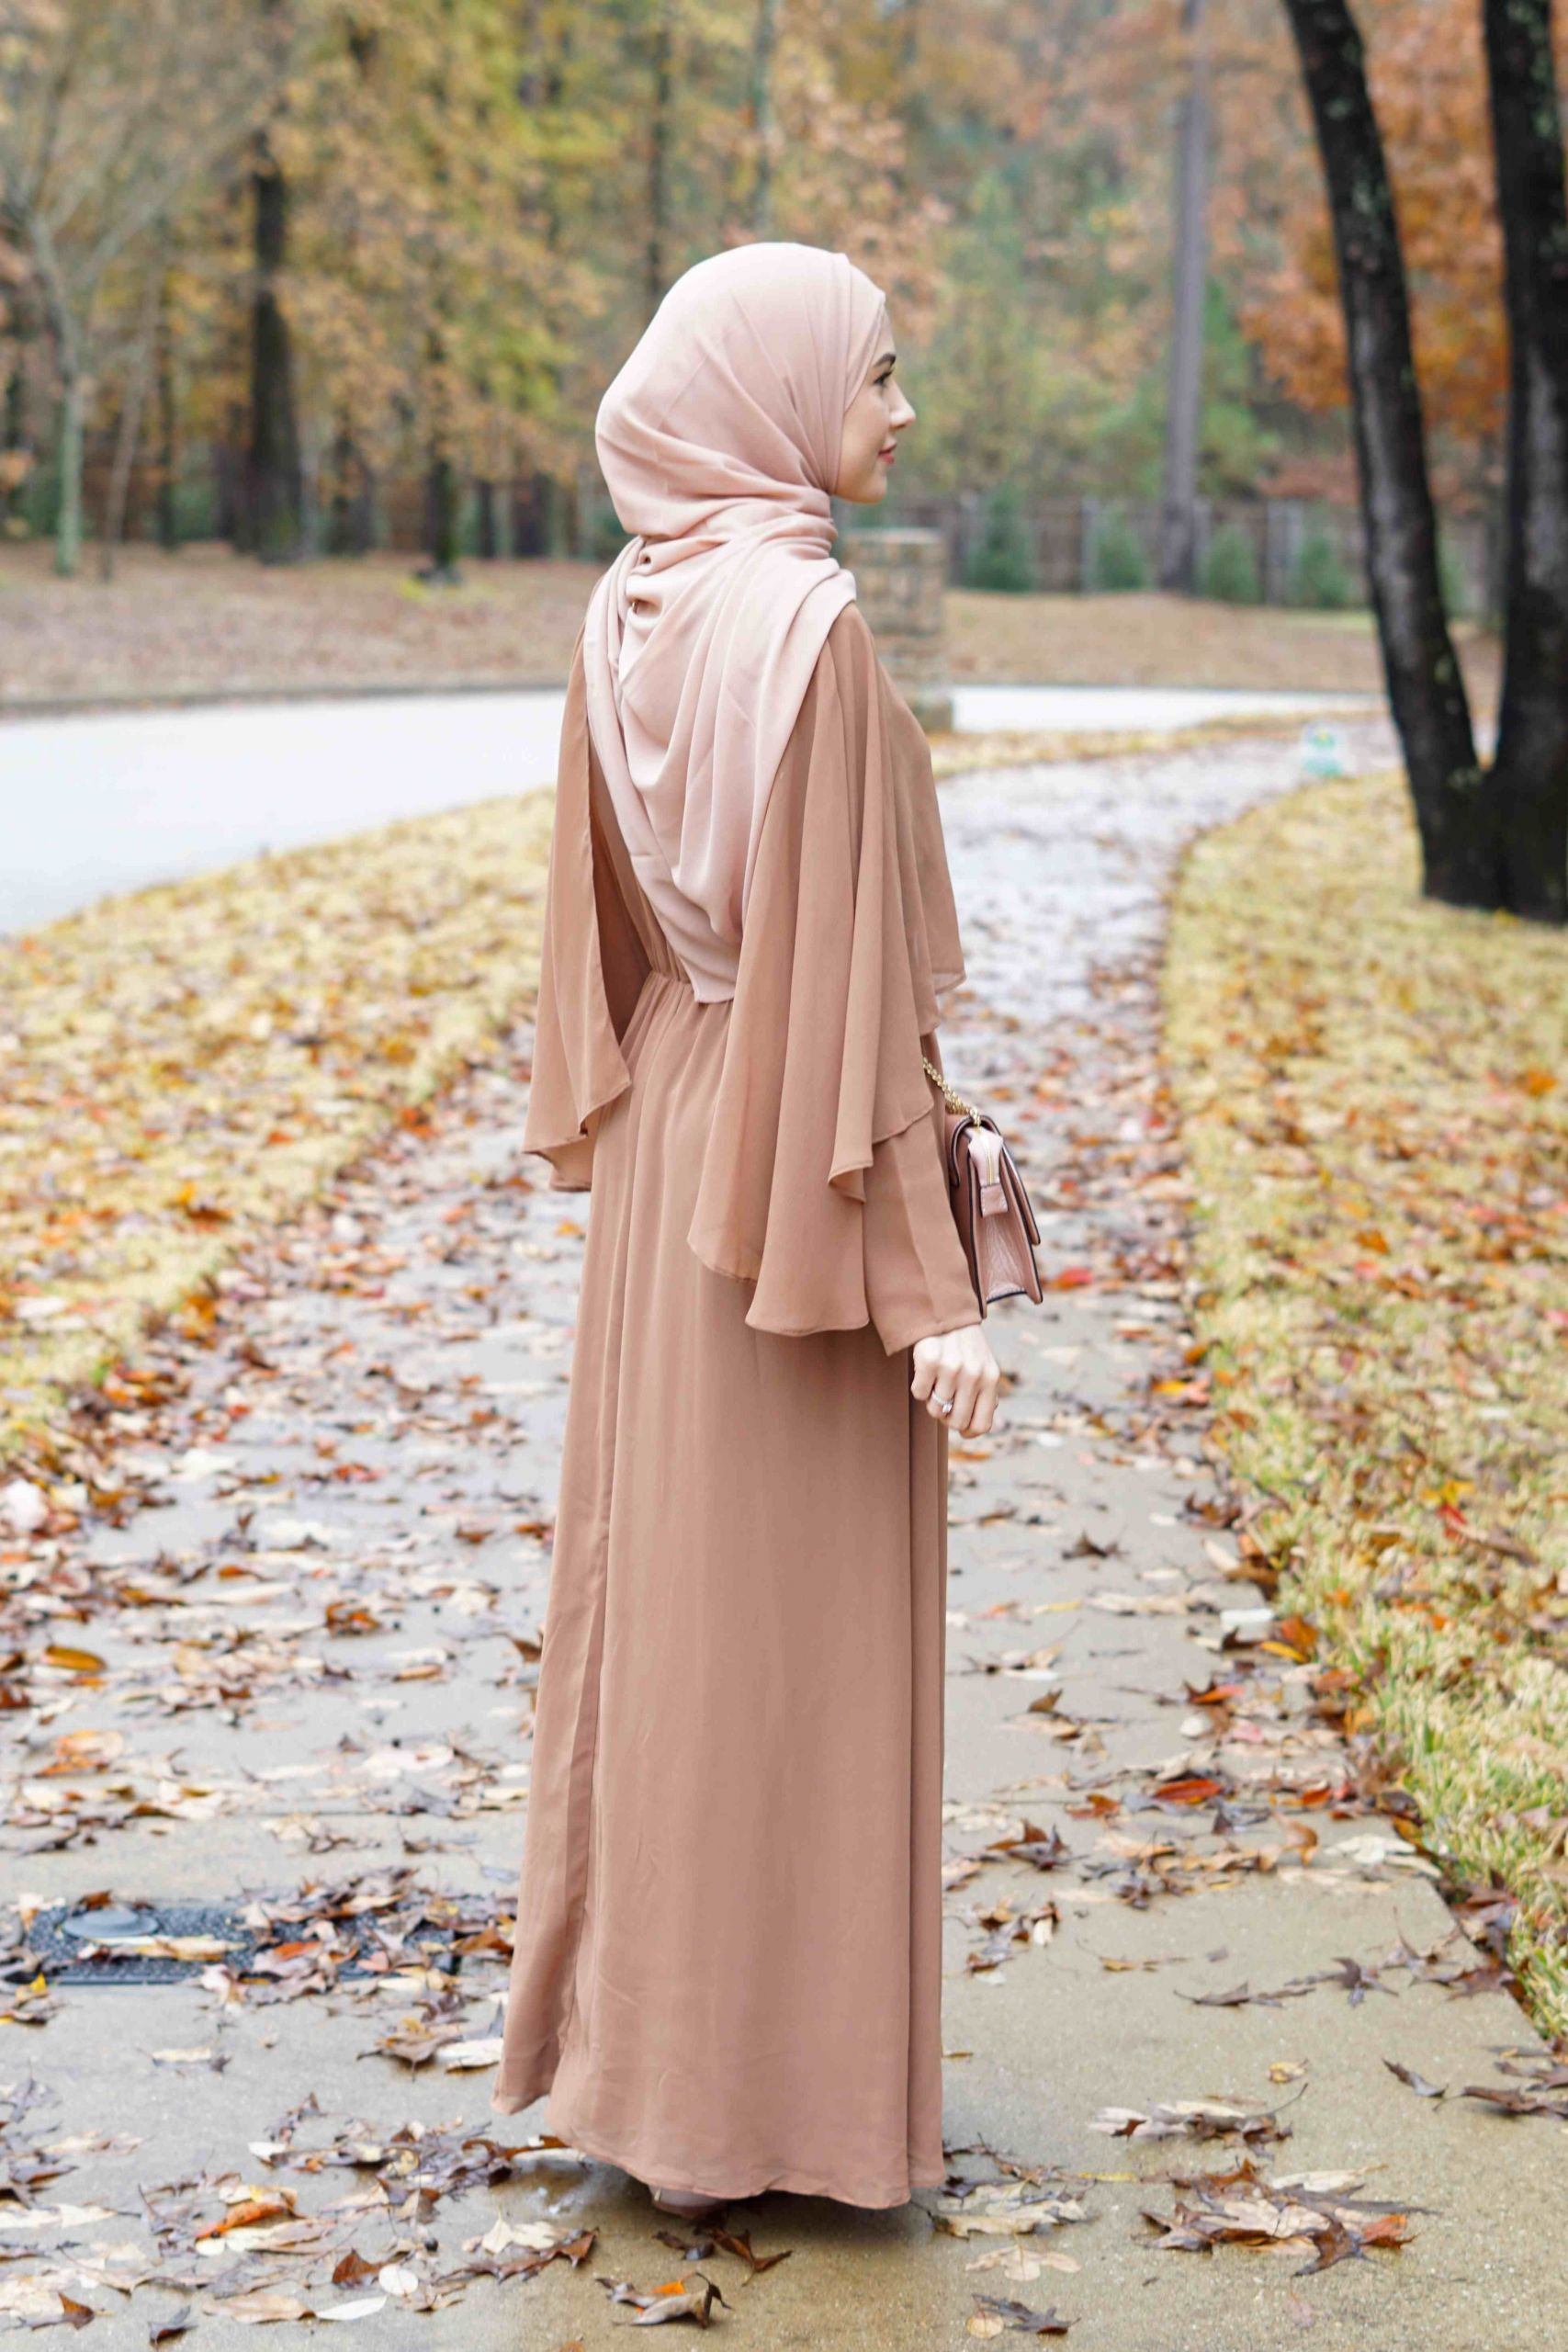 Model Fashion Muslimah Casual 9fdy ριитєяєѕт Inxspiration